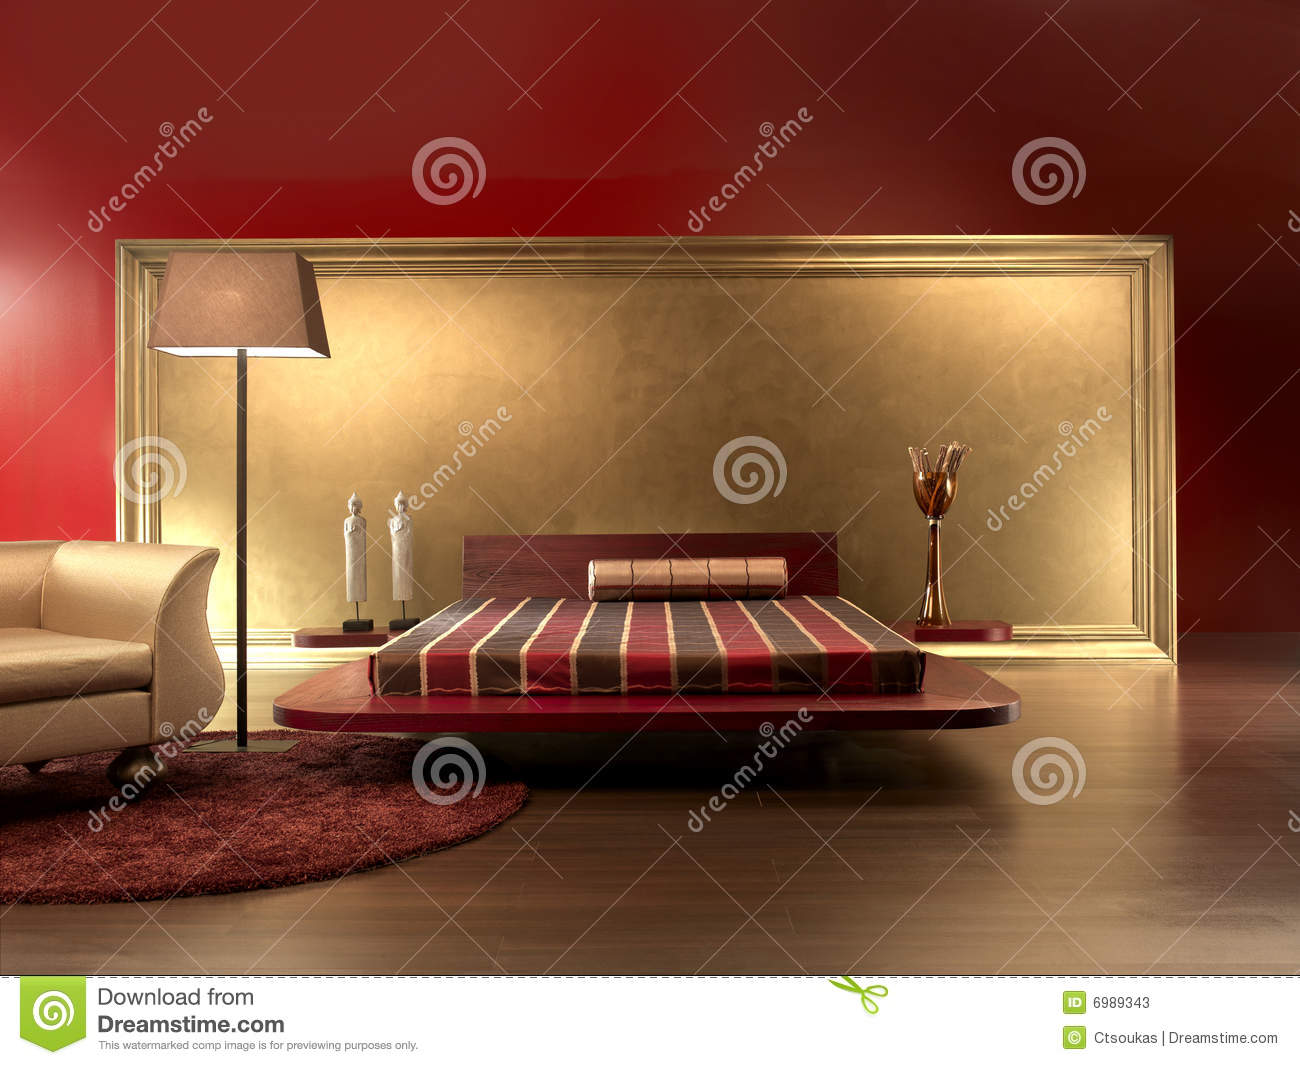 Chambre coucher luxueuse image stock image du int rieur for Chambre luxueuse